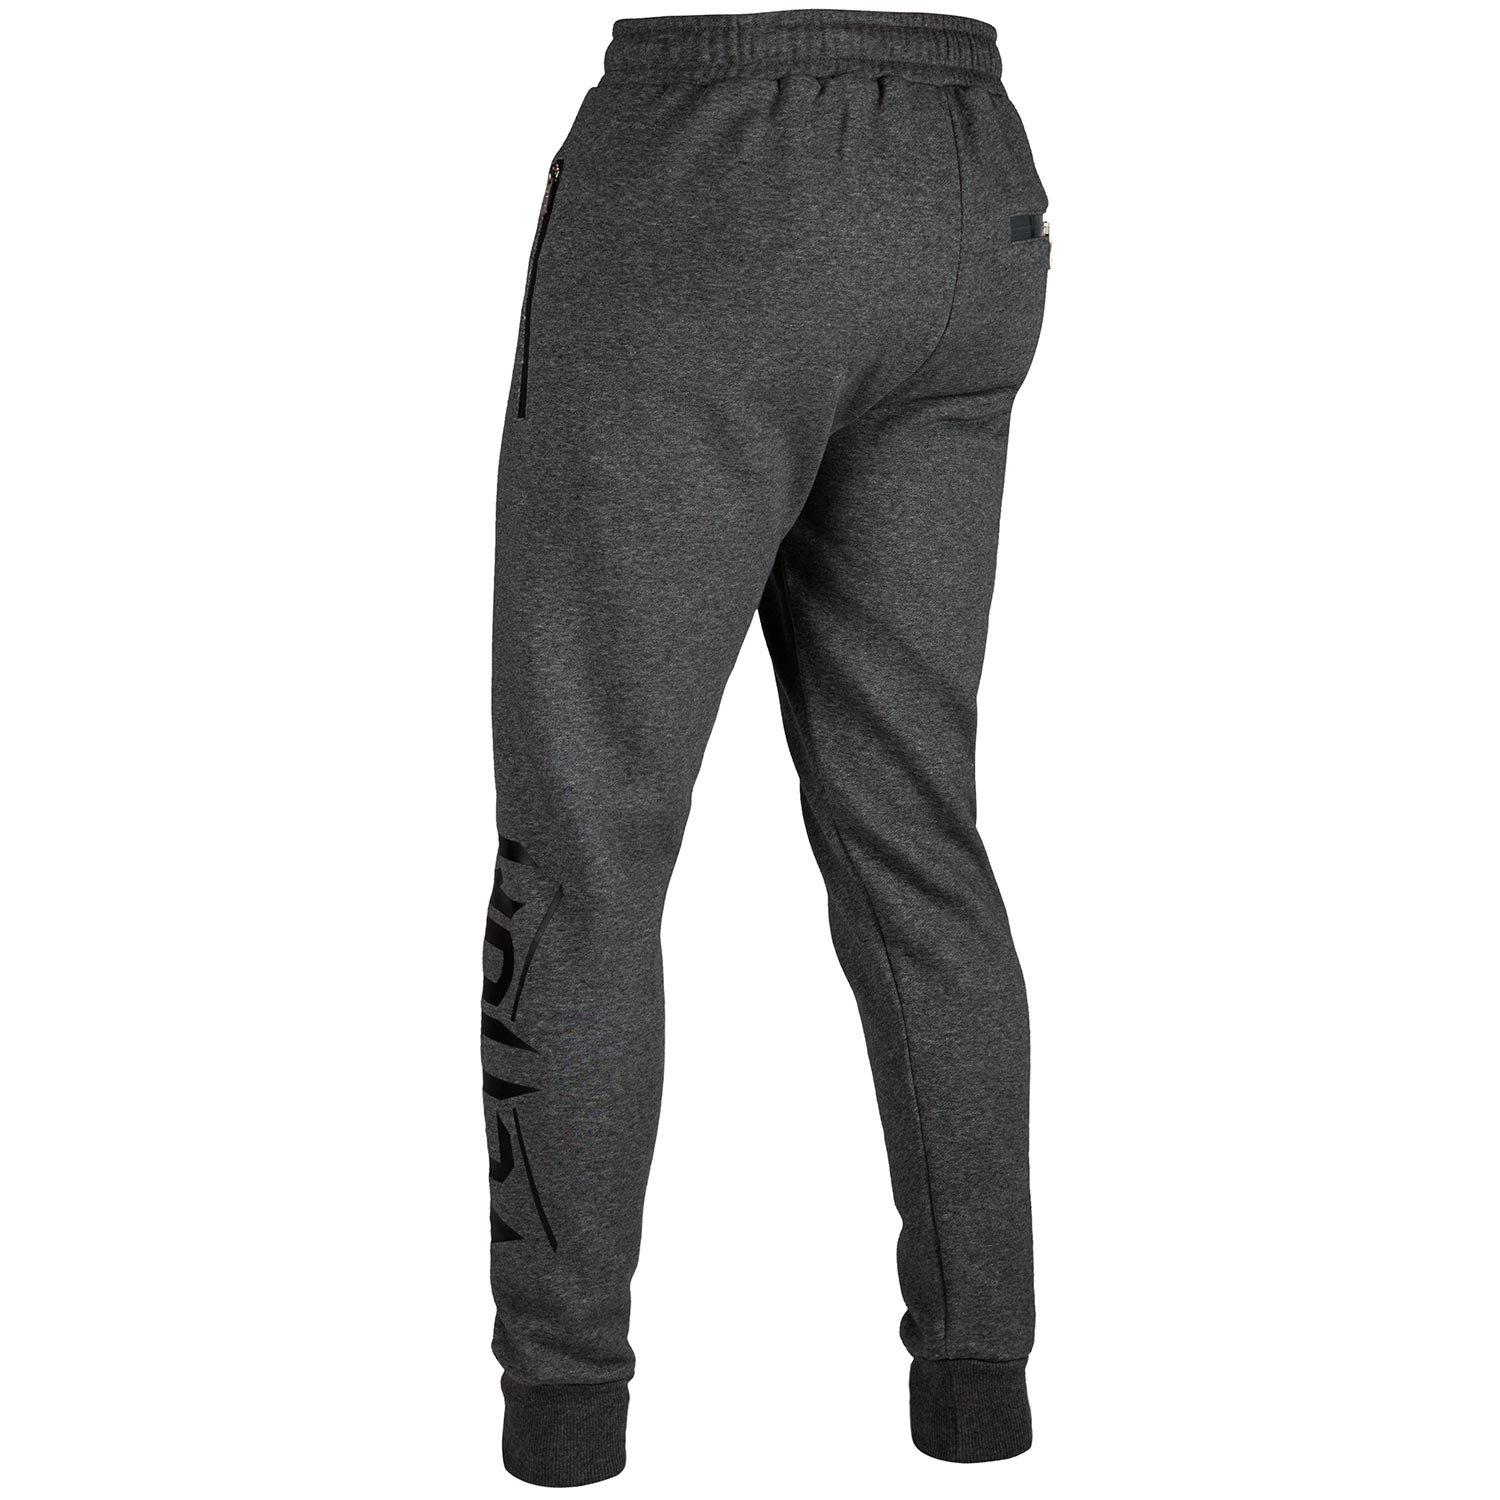 Venum Contender 2.0 Jogging Pants - Grey/Black - Medium by Venum (Image #2)